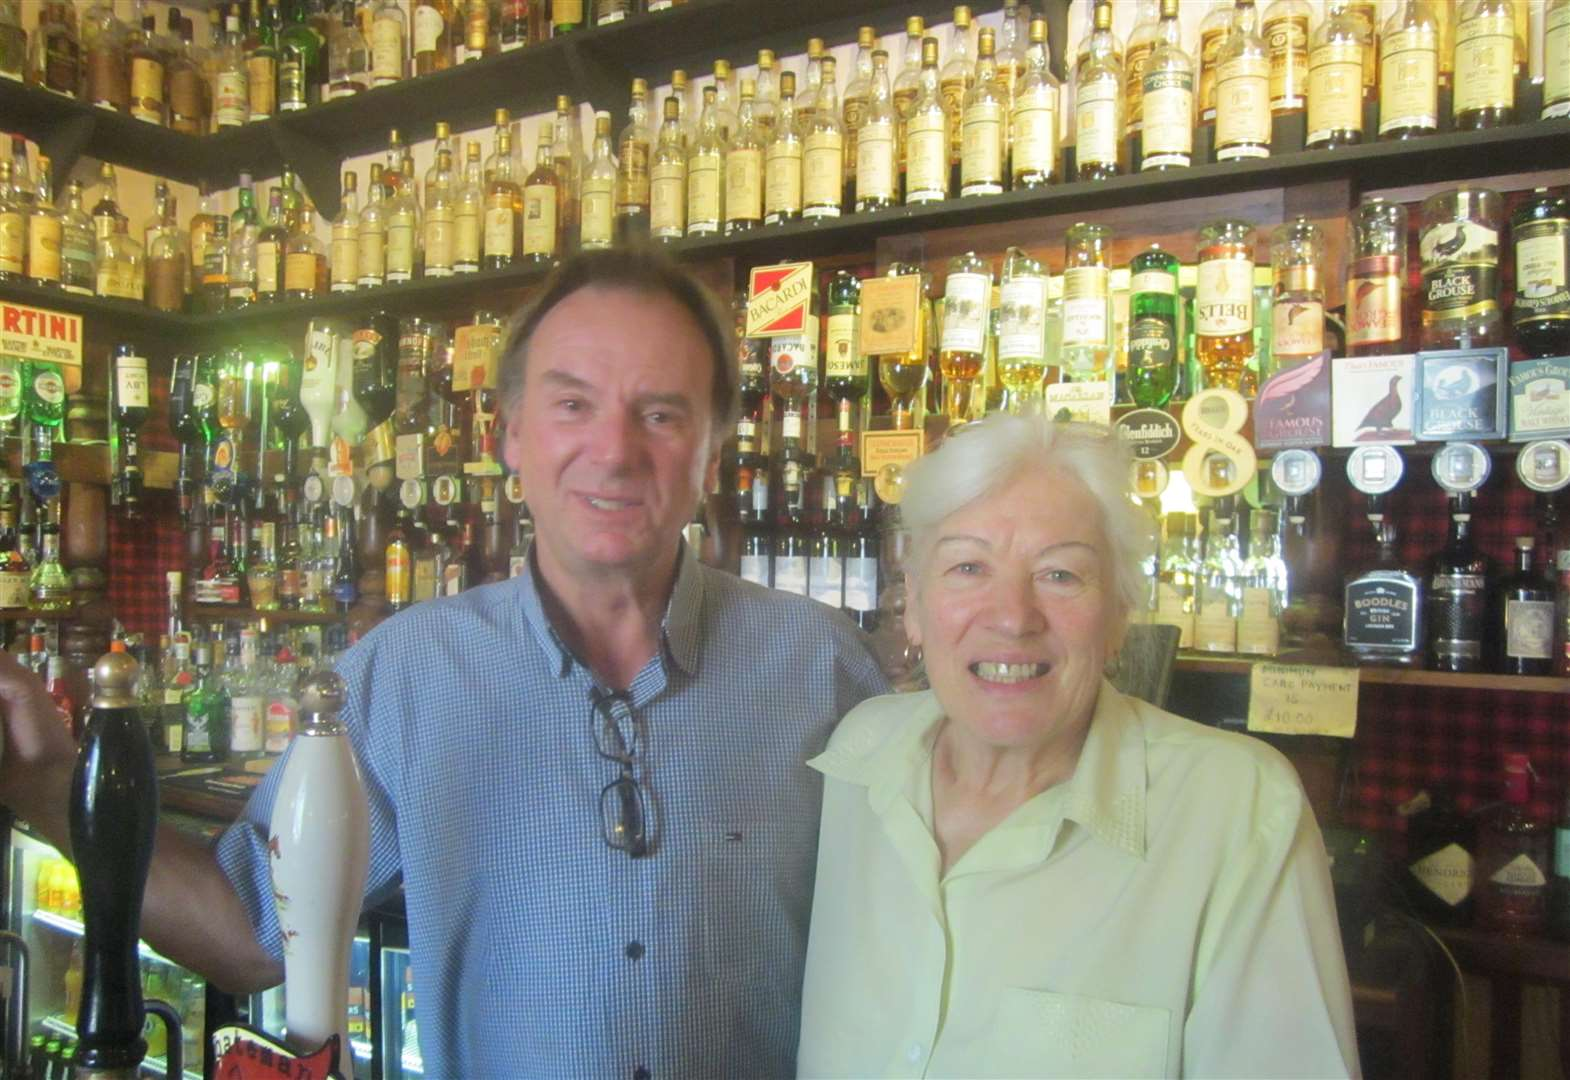 After 49 years at helm of historic pub, Mike and Karin are ready to pull their last pints